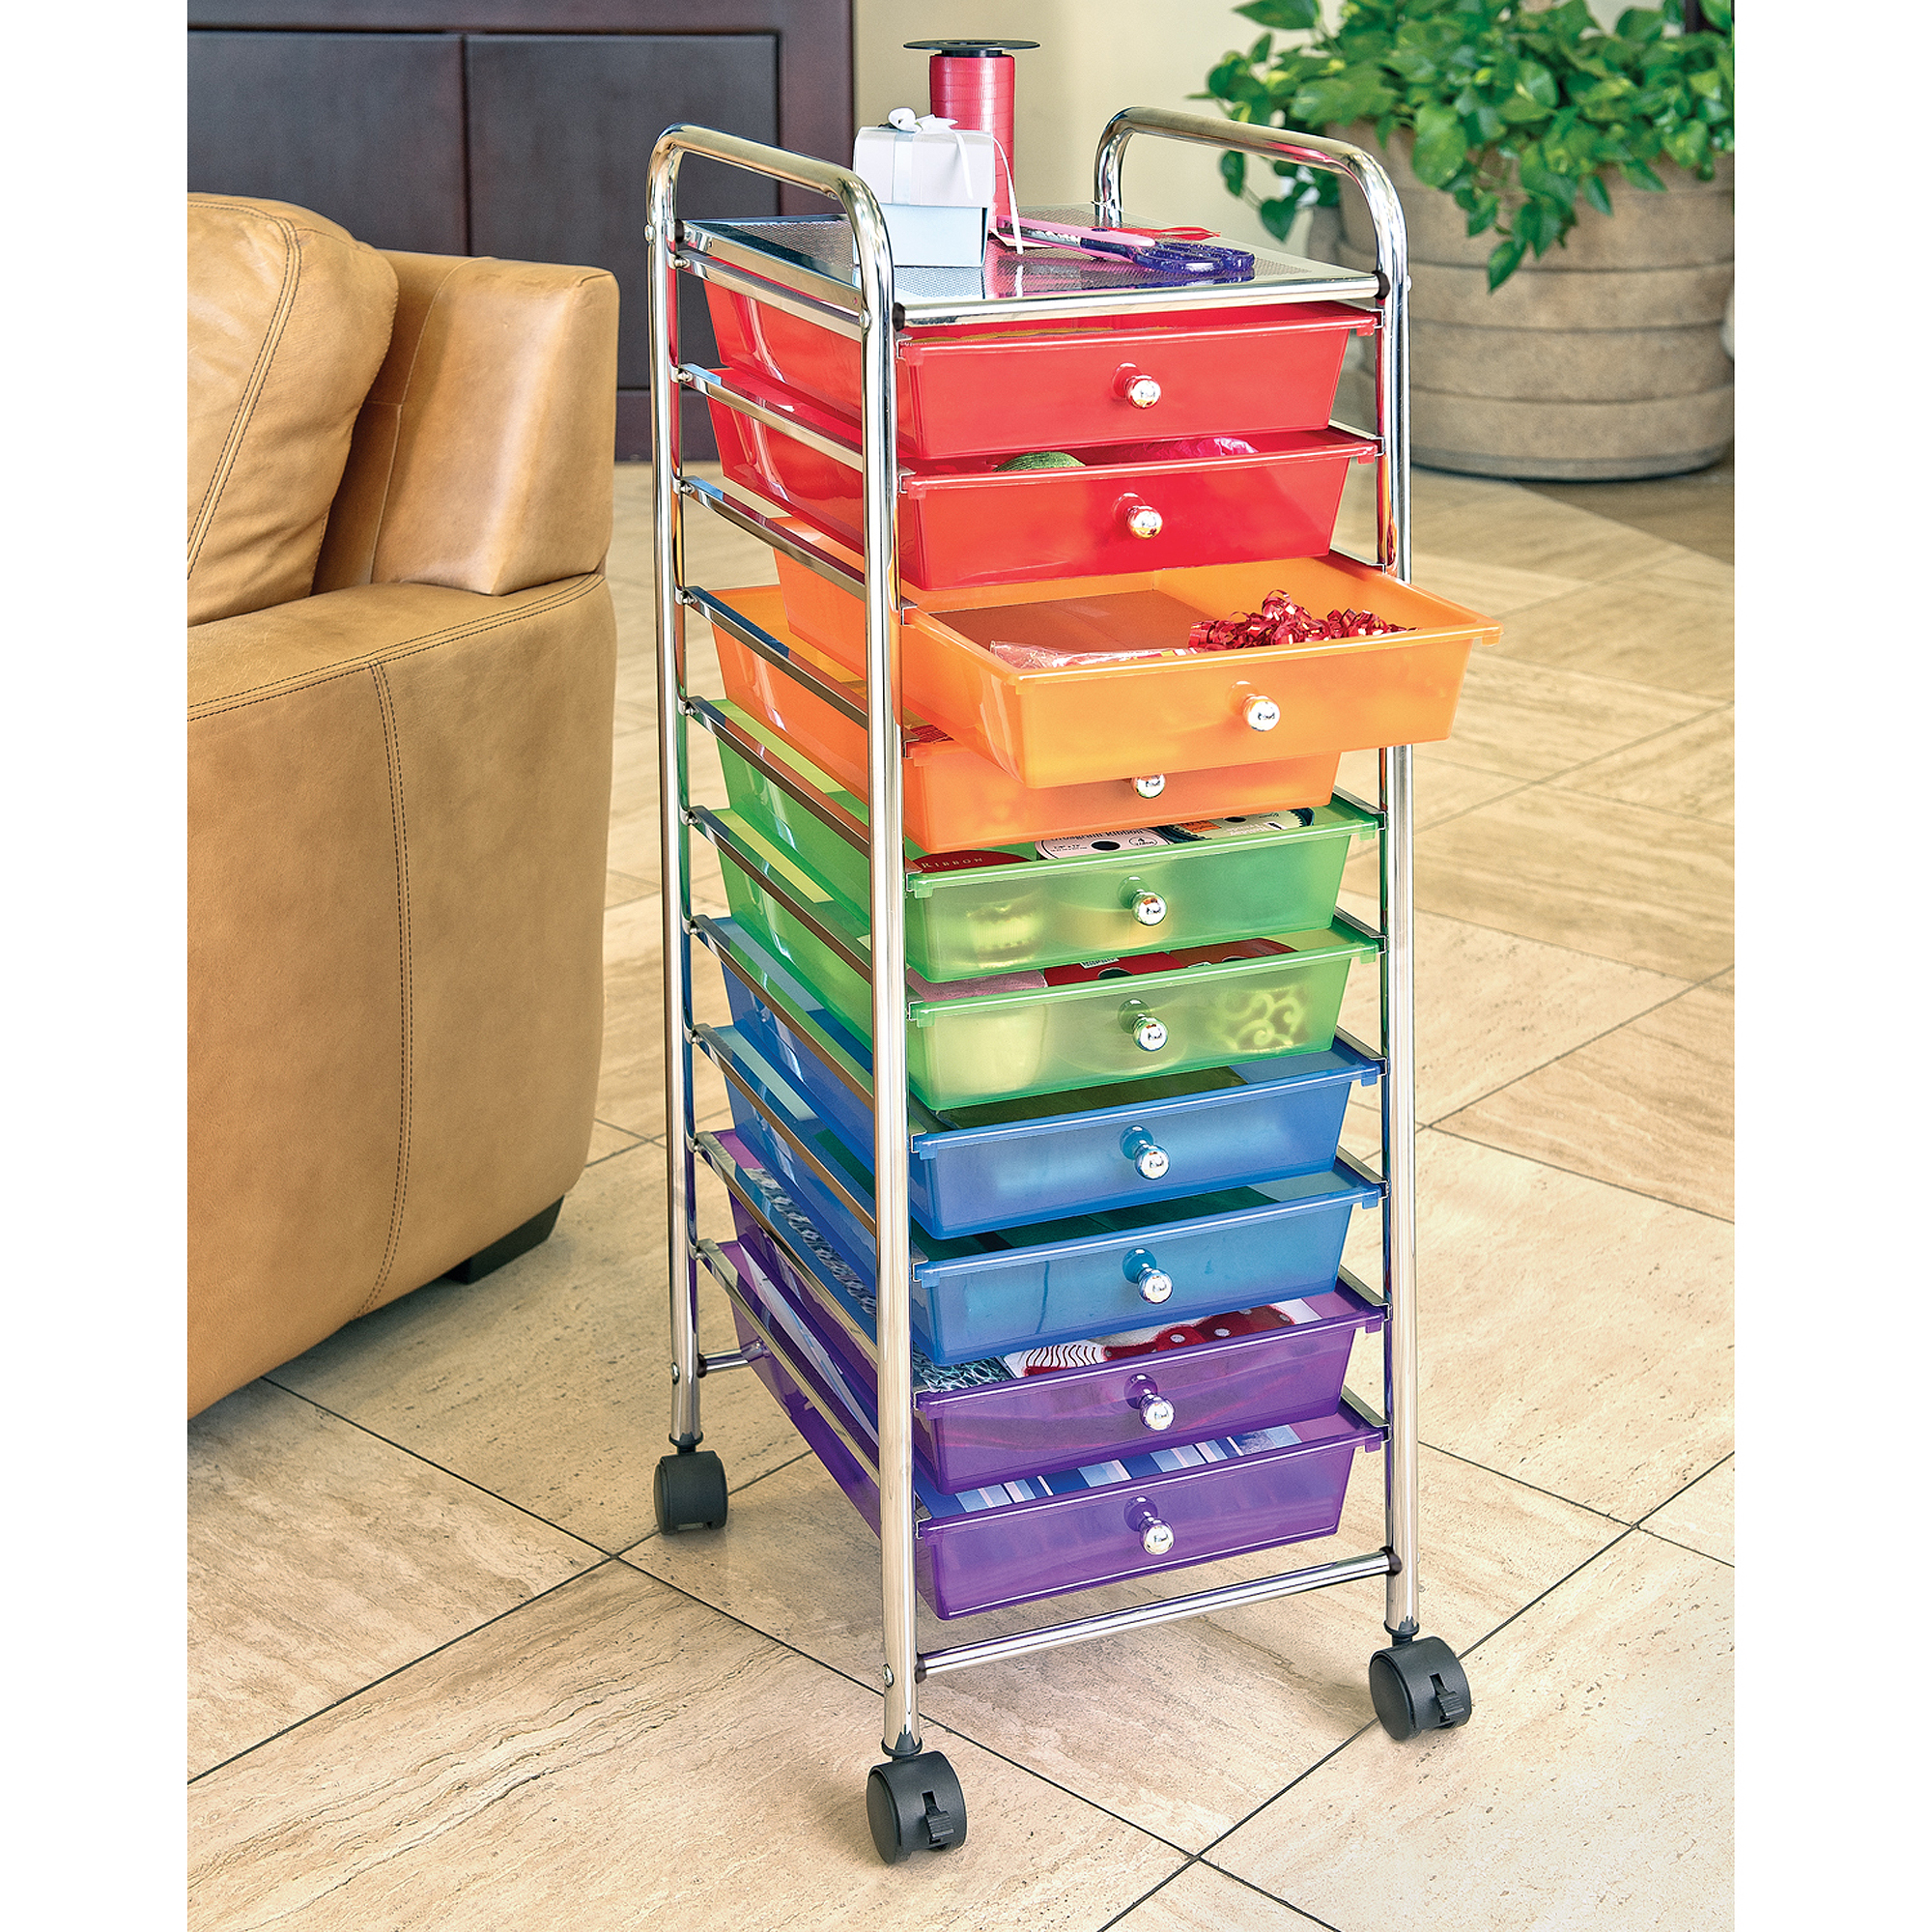 Attractive 10 Drawer Organizer Cart W/ Wheels, Pearl Multi Color By Seville Classics    Walmart.com